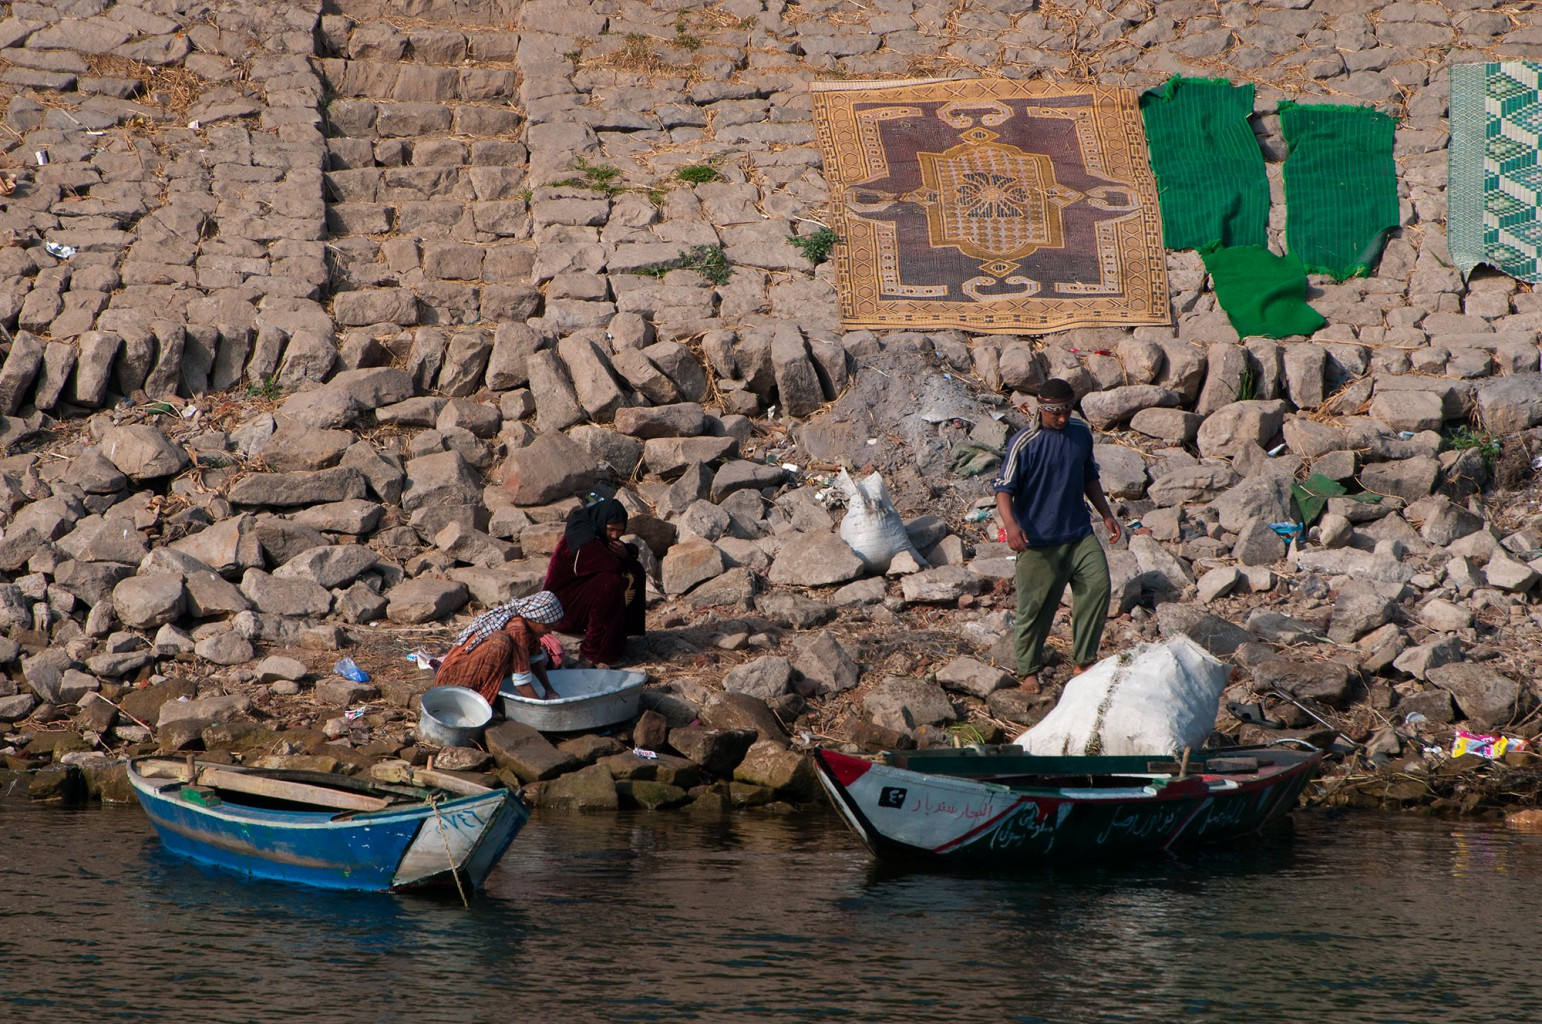 Life along the Nile in Egypt